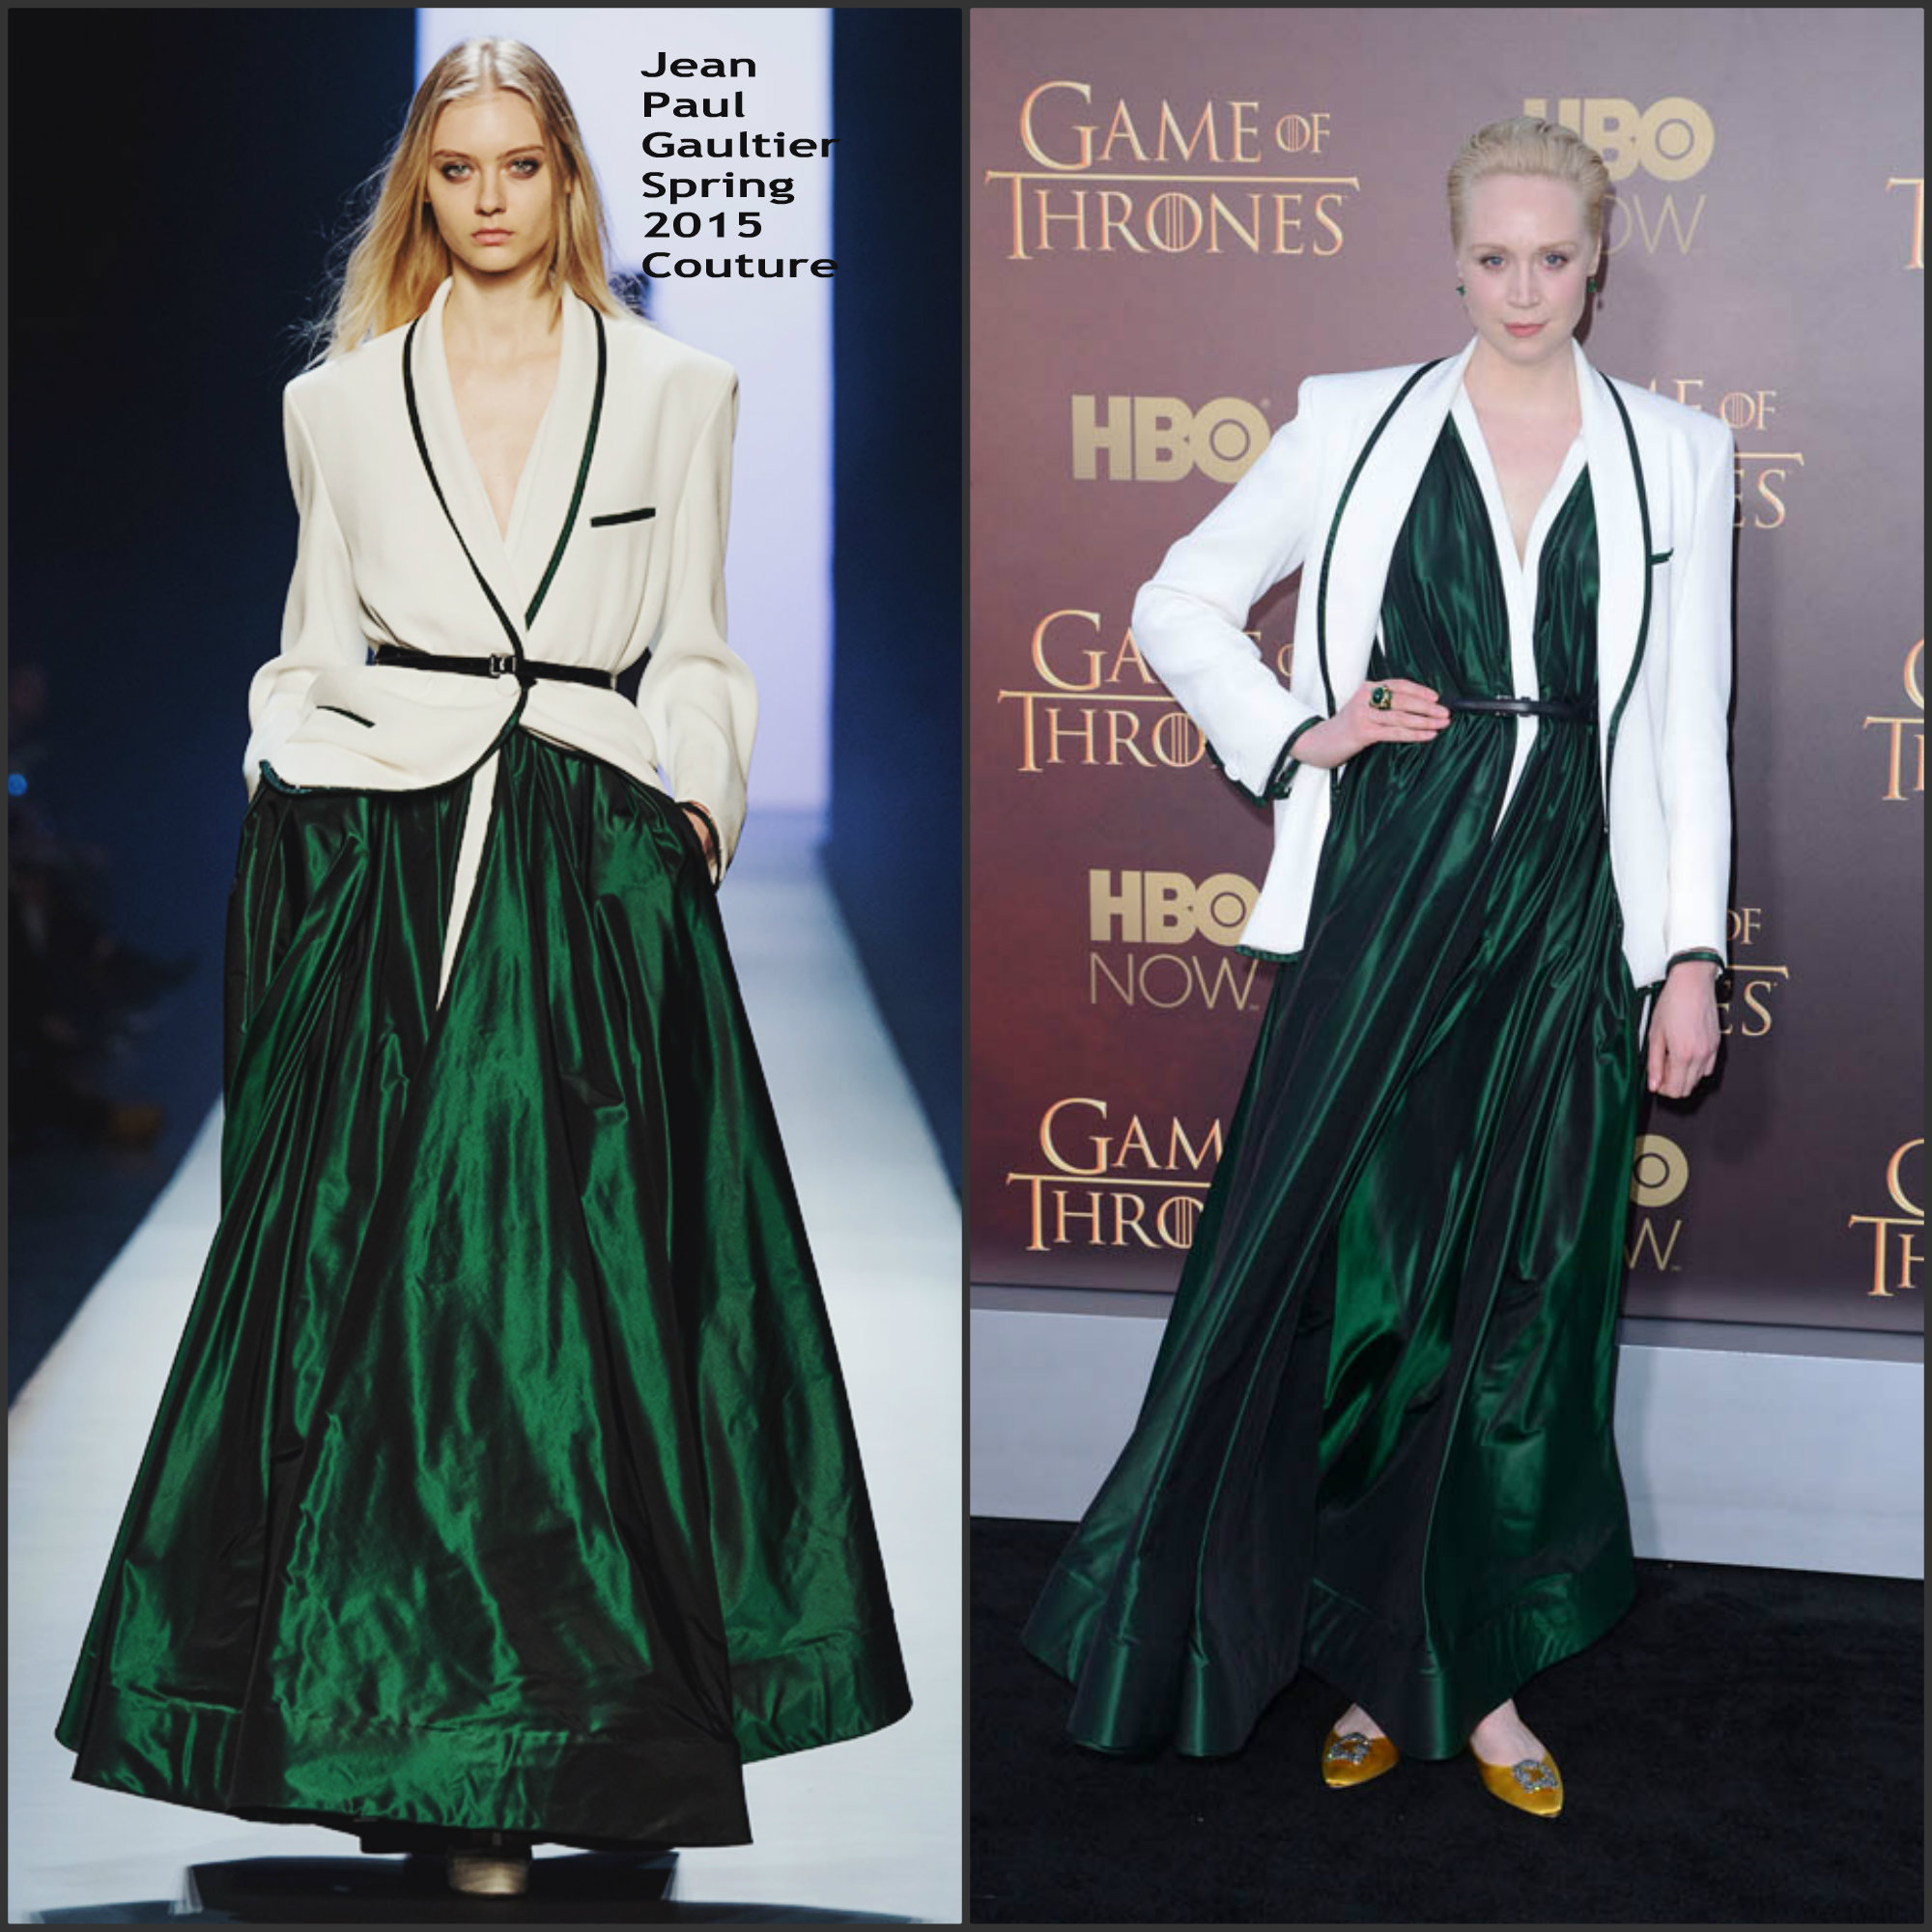 Gwendoline-Christie-In-Jean-Paul-Gaultier-Couture-at-Games-Of-Thrones-Season-5-Premiere